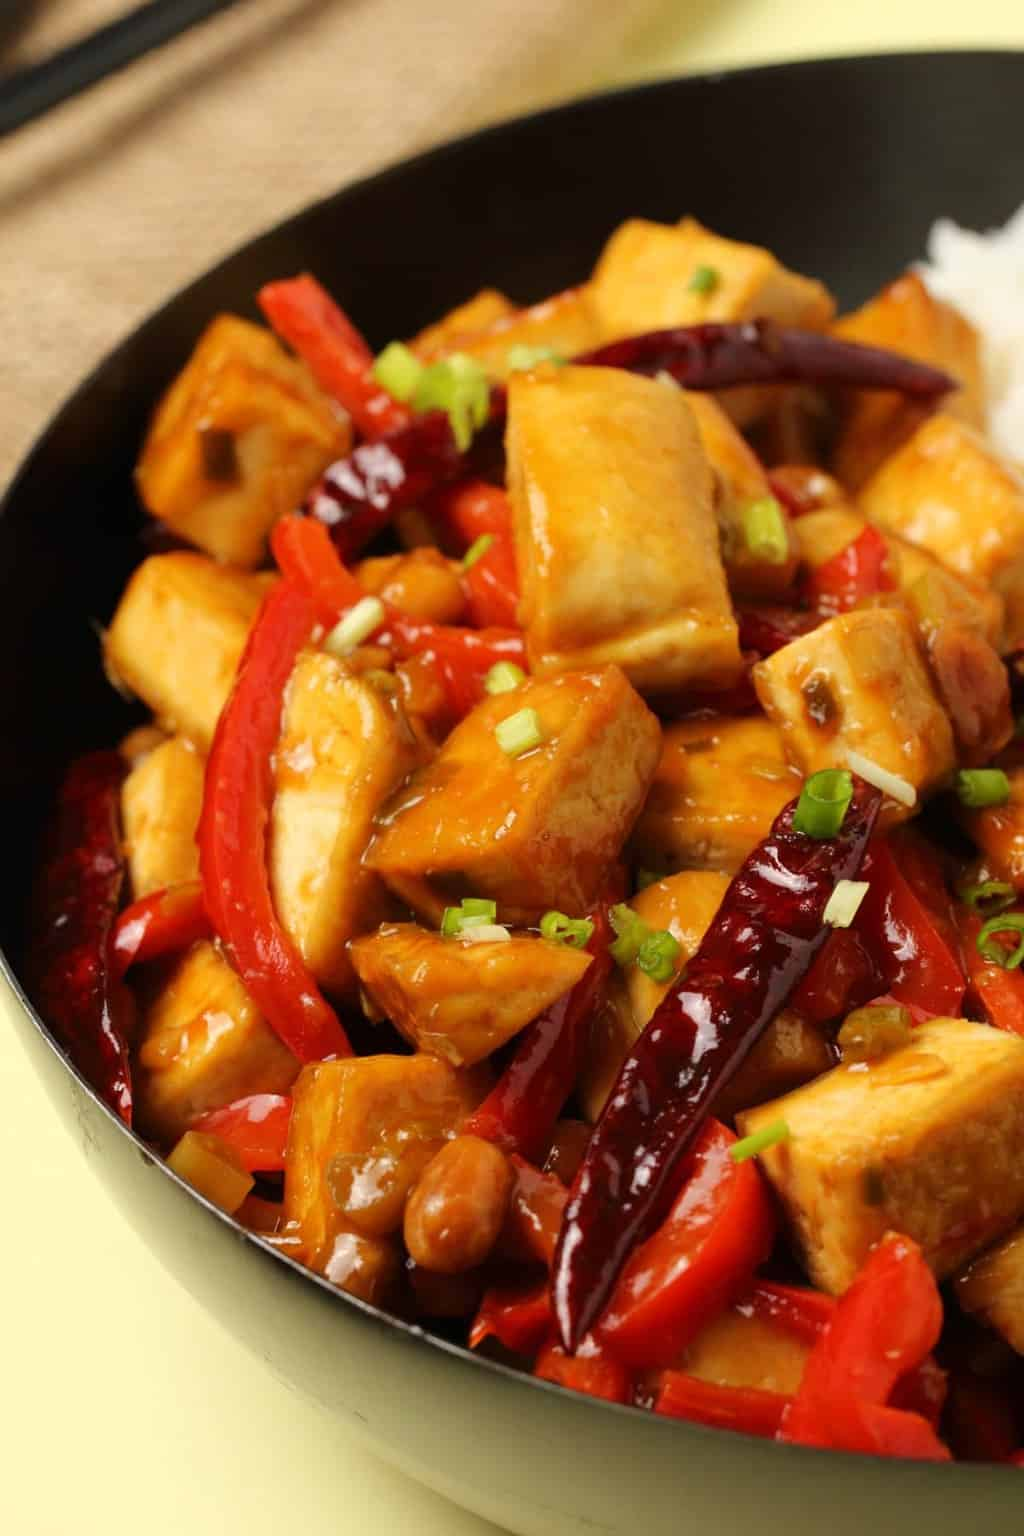 Kung pao tofu served in a wok topped with chopped spring onions.